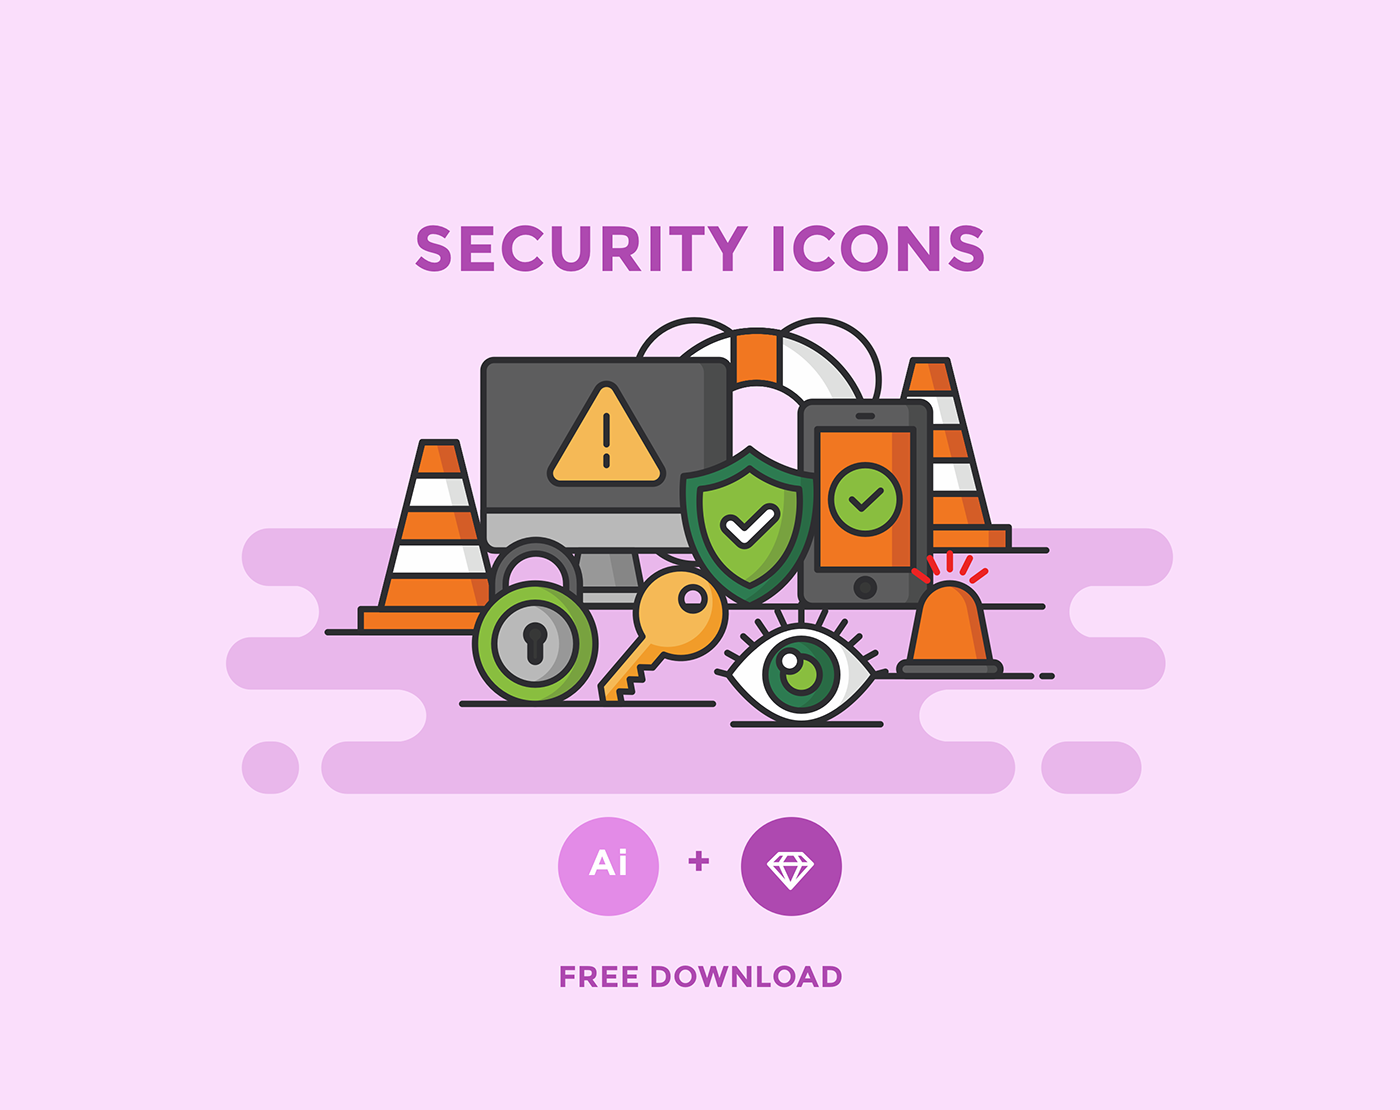 Free Download: Security Icons